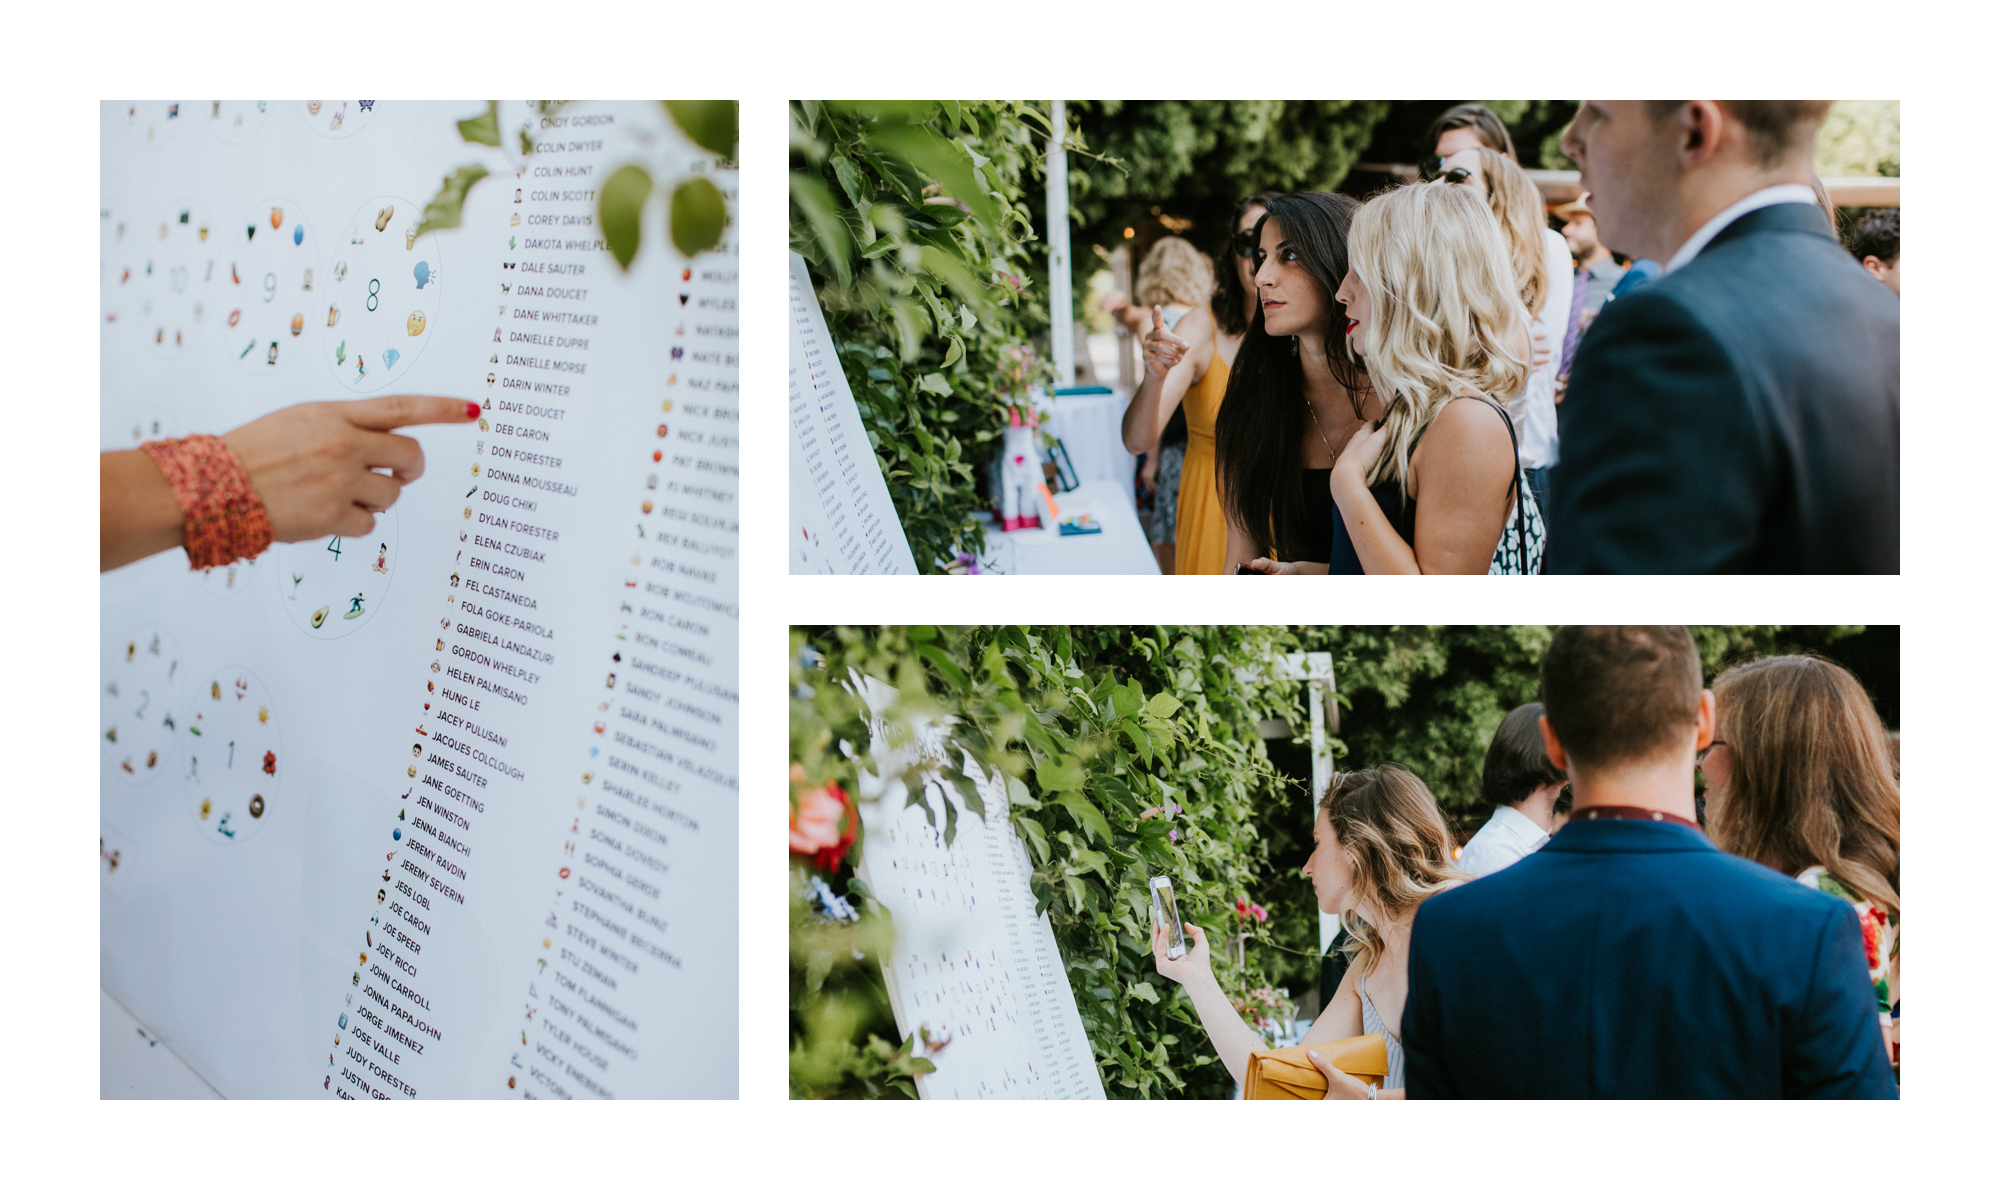 Photos of guests interacting with the seating chart. It was a great conversation piece!